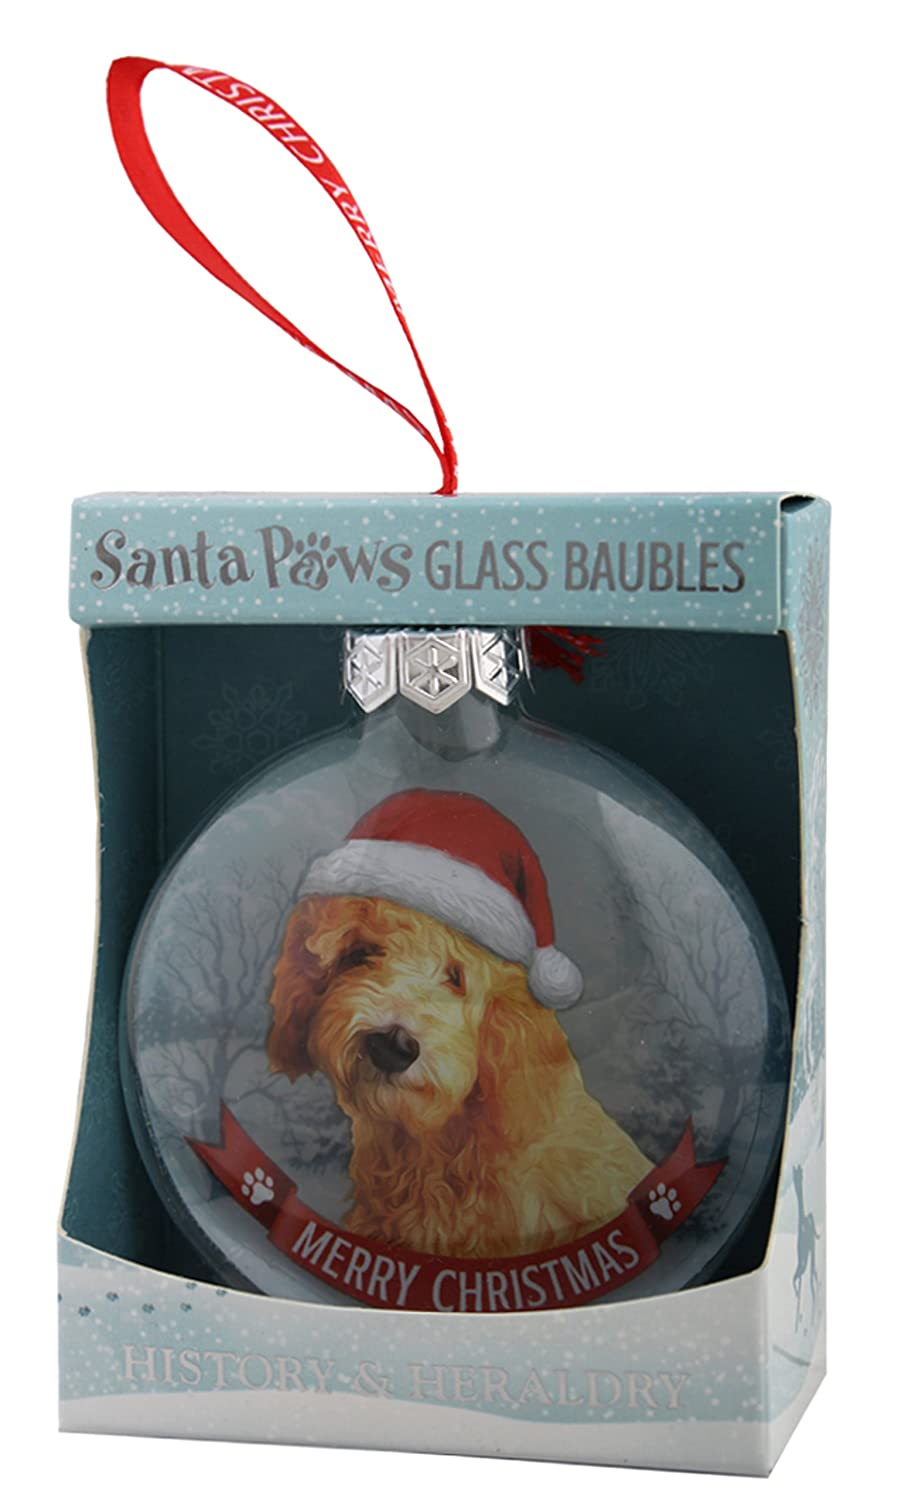 Santa Paws Glass Ornaments Bauble-Goldendoodle Ornament, Multicolor History & Heraldry 265020037